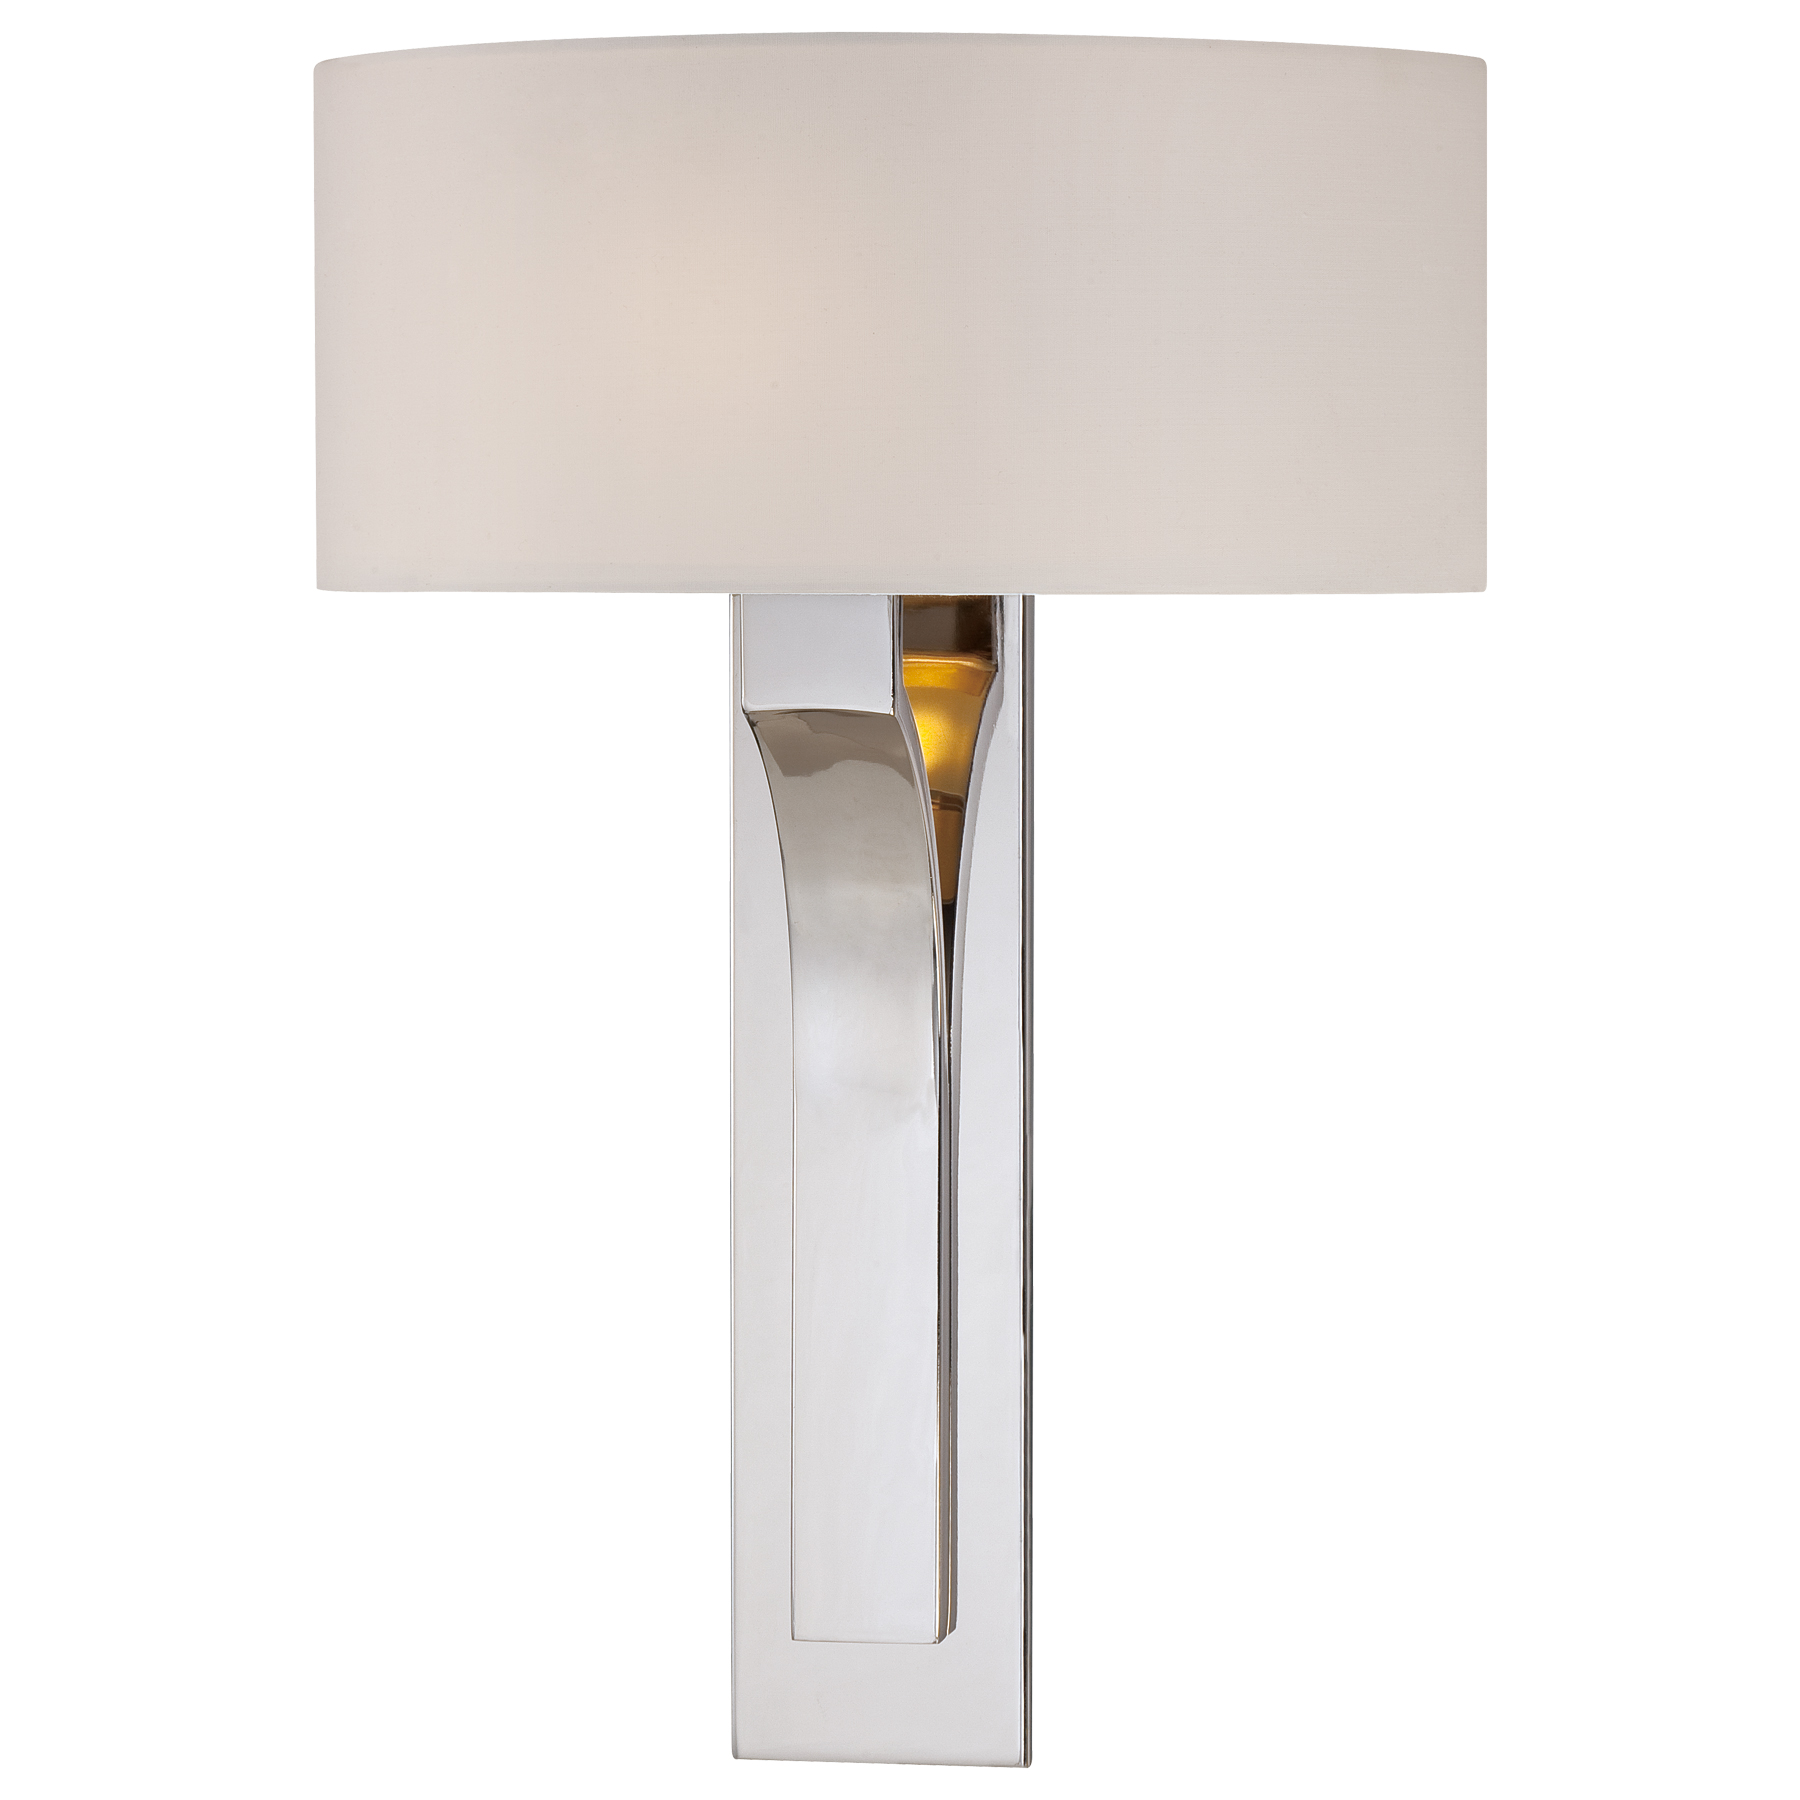 Office Wall Sconces P1705 Wall Sconce By George Kovacs P1705 613